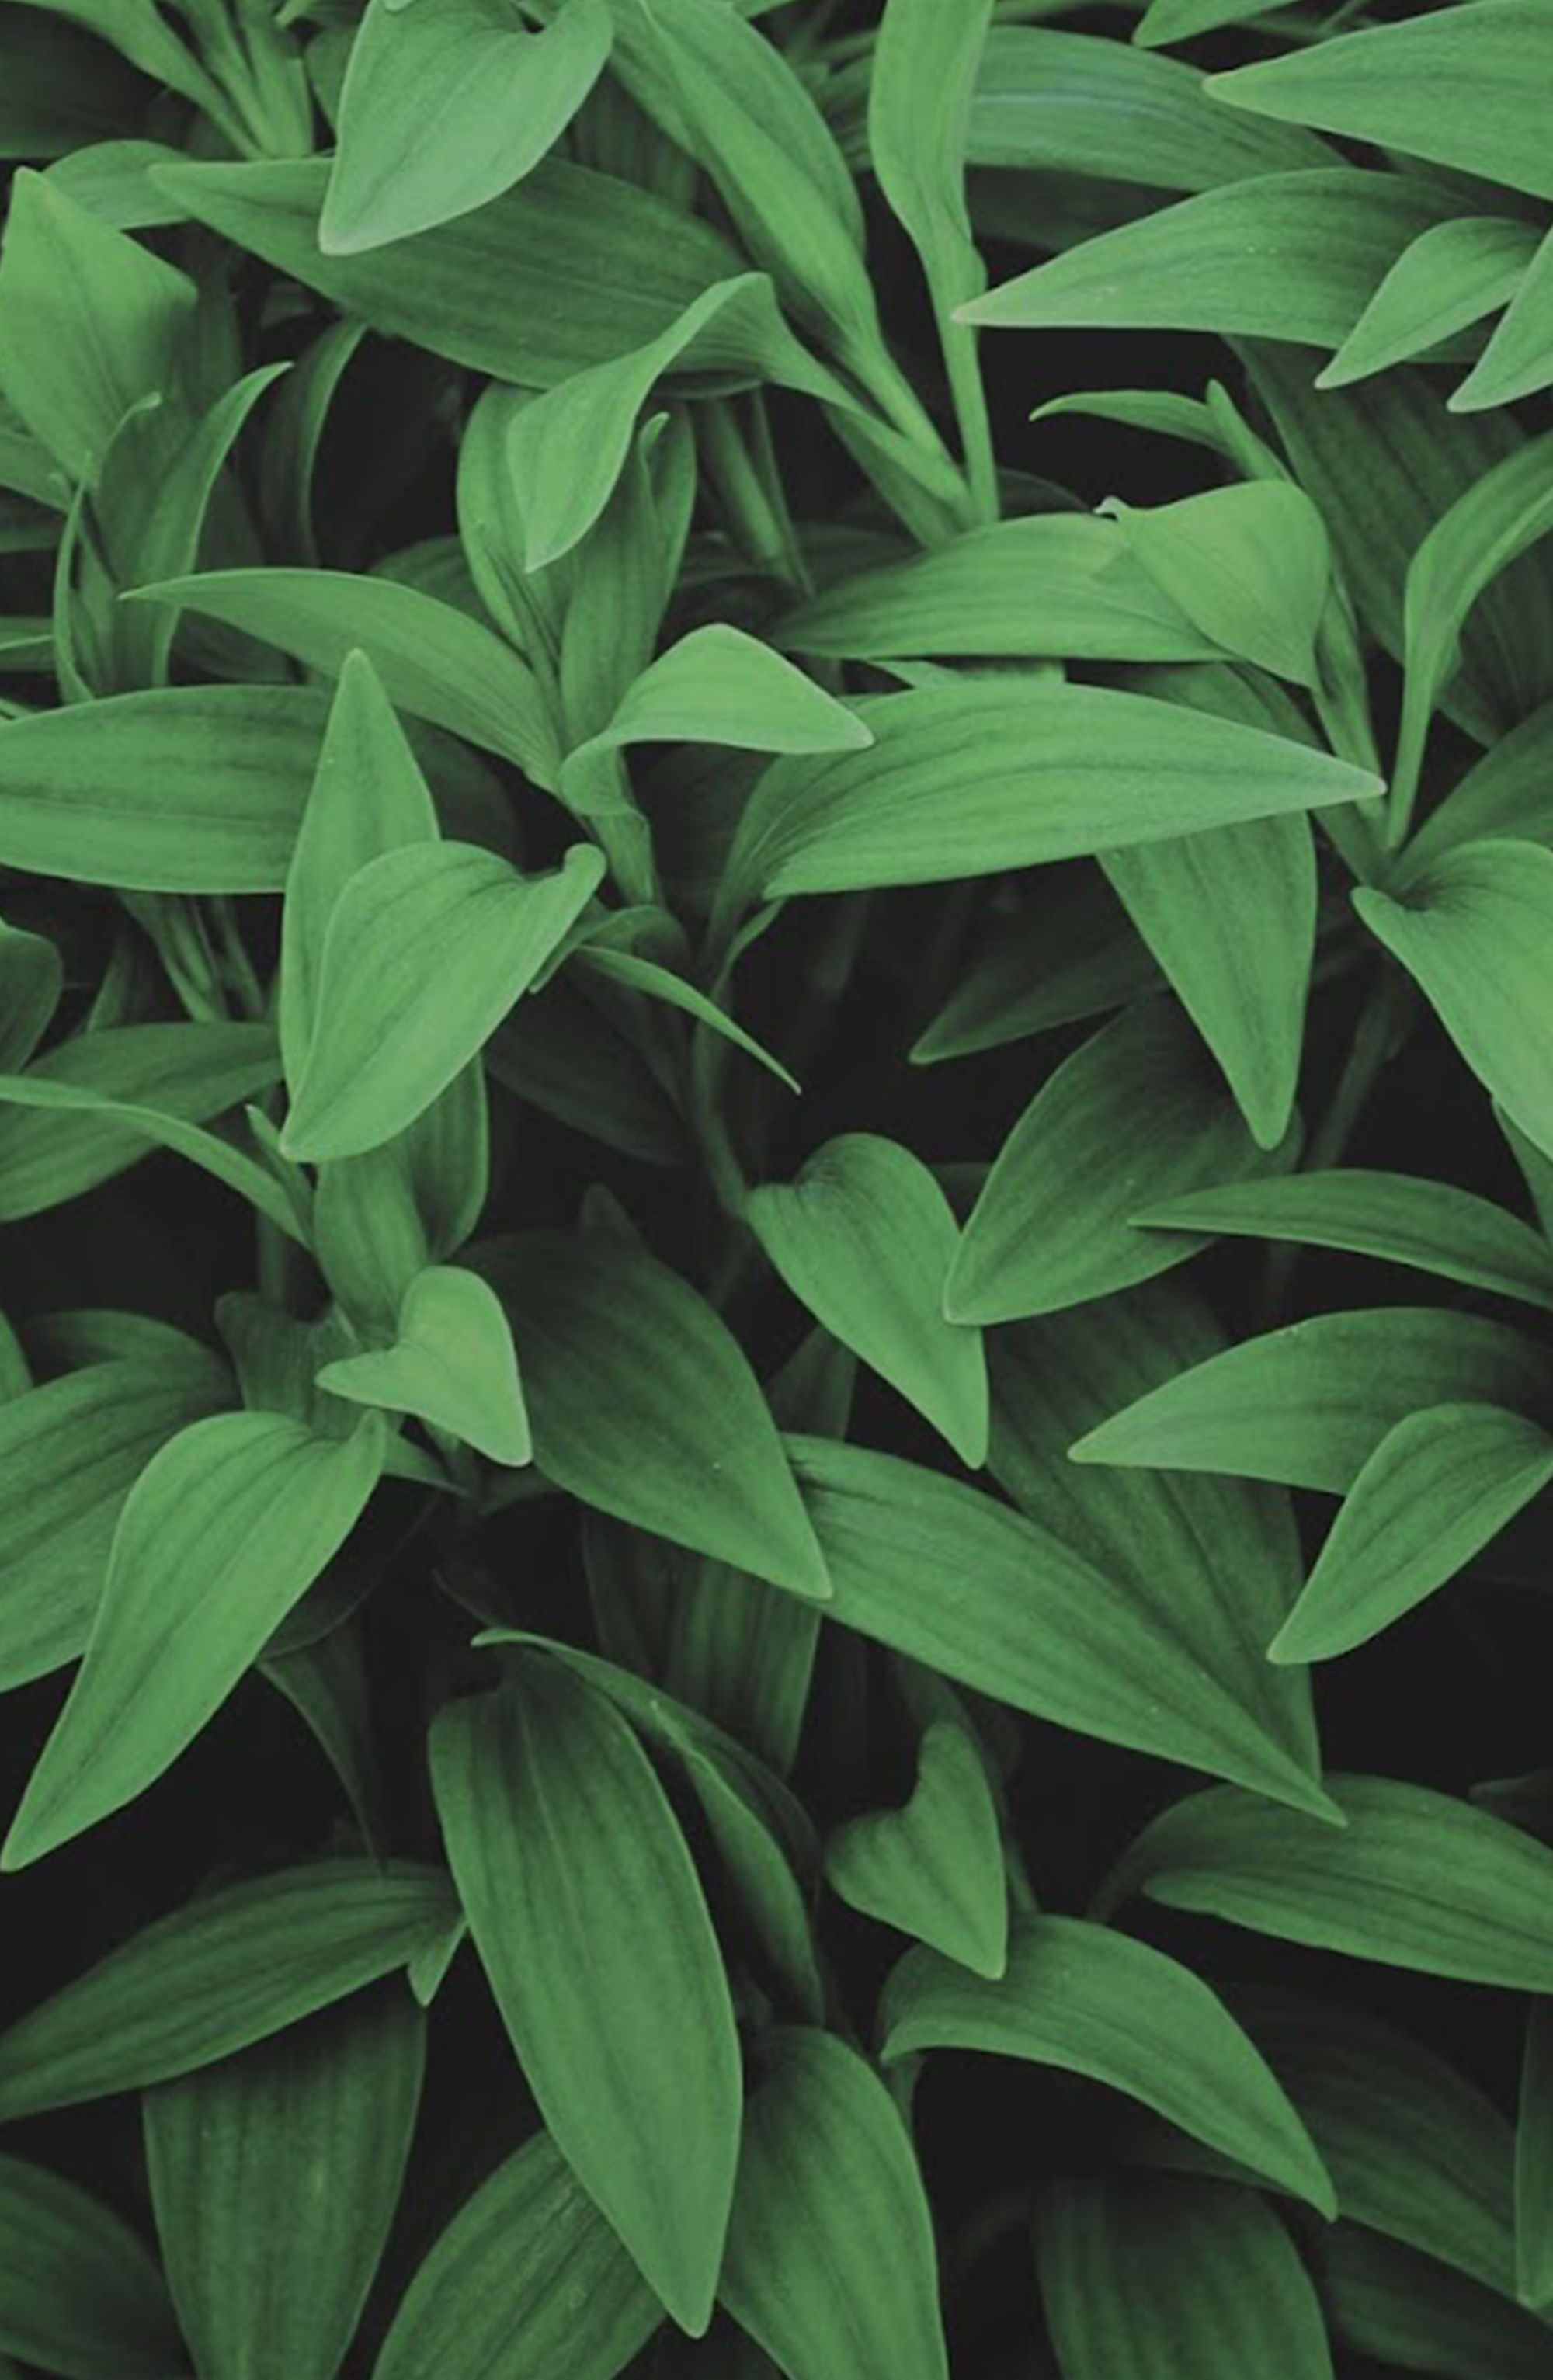 We Think Oppo Might Enjoy This One Leaves Wallpaper